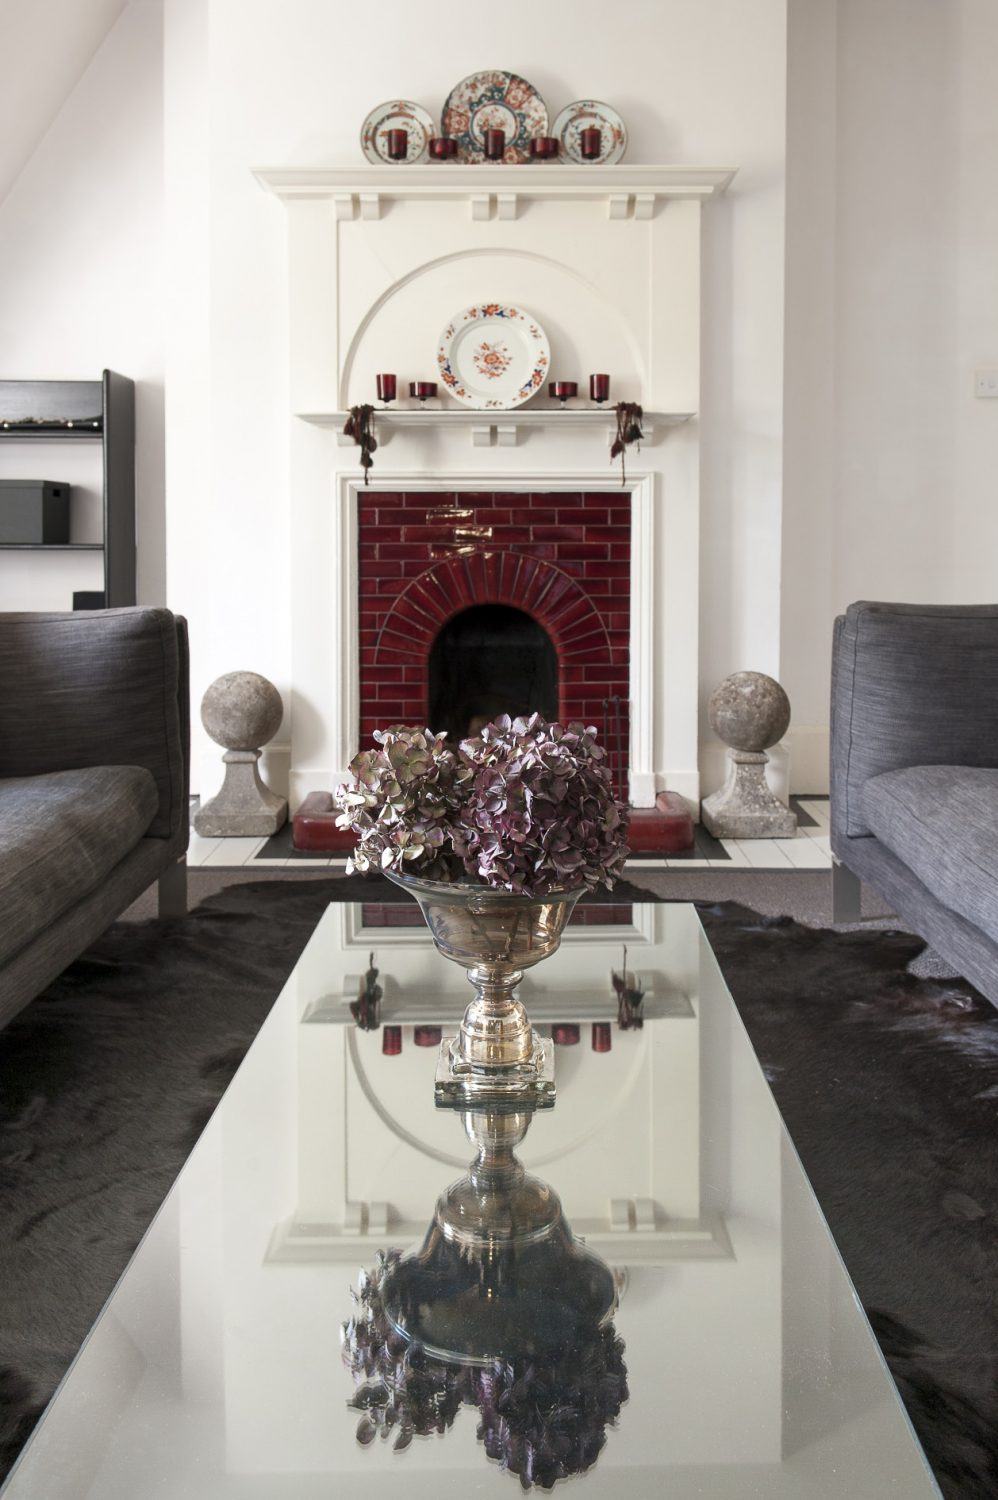 Two huge grey velvet Habitat sofas recline on black cow hides facing each other across a long glass table. In the widow hang matching grey velvet curtains and the whole scheme is perfectly set off by the original deep red tiled fireplace